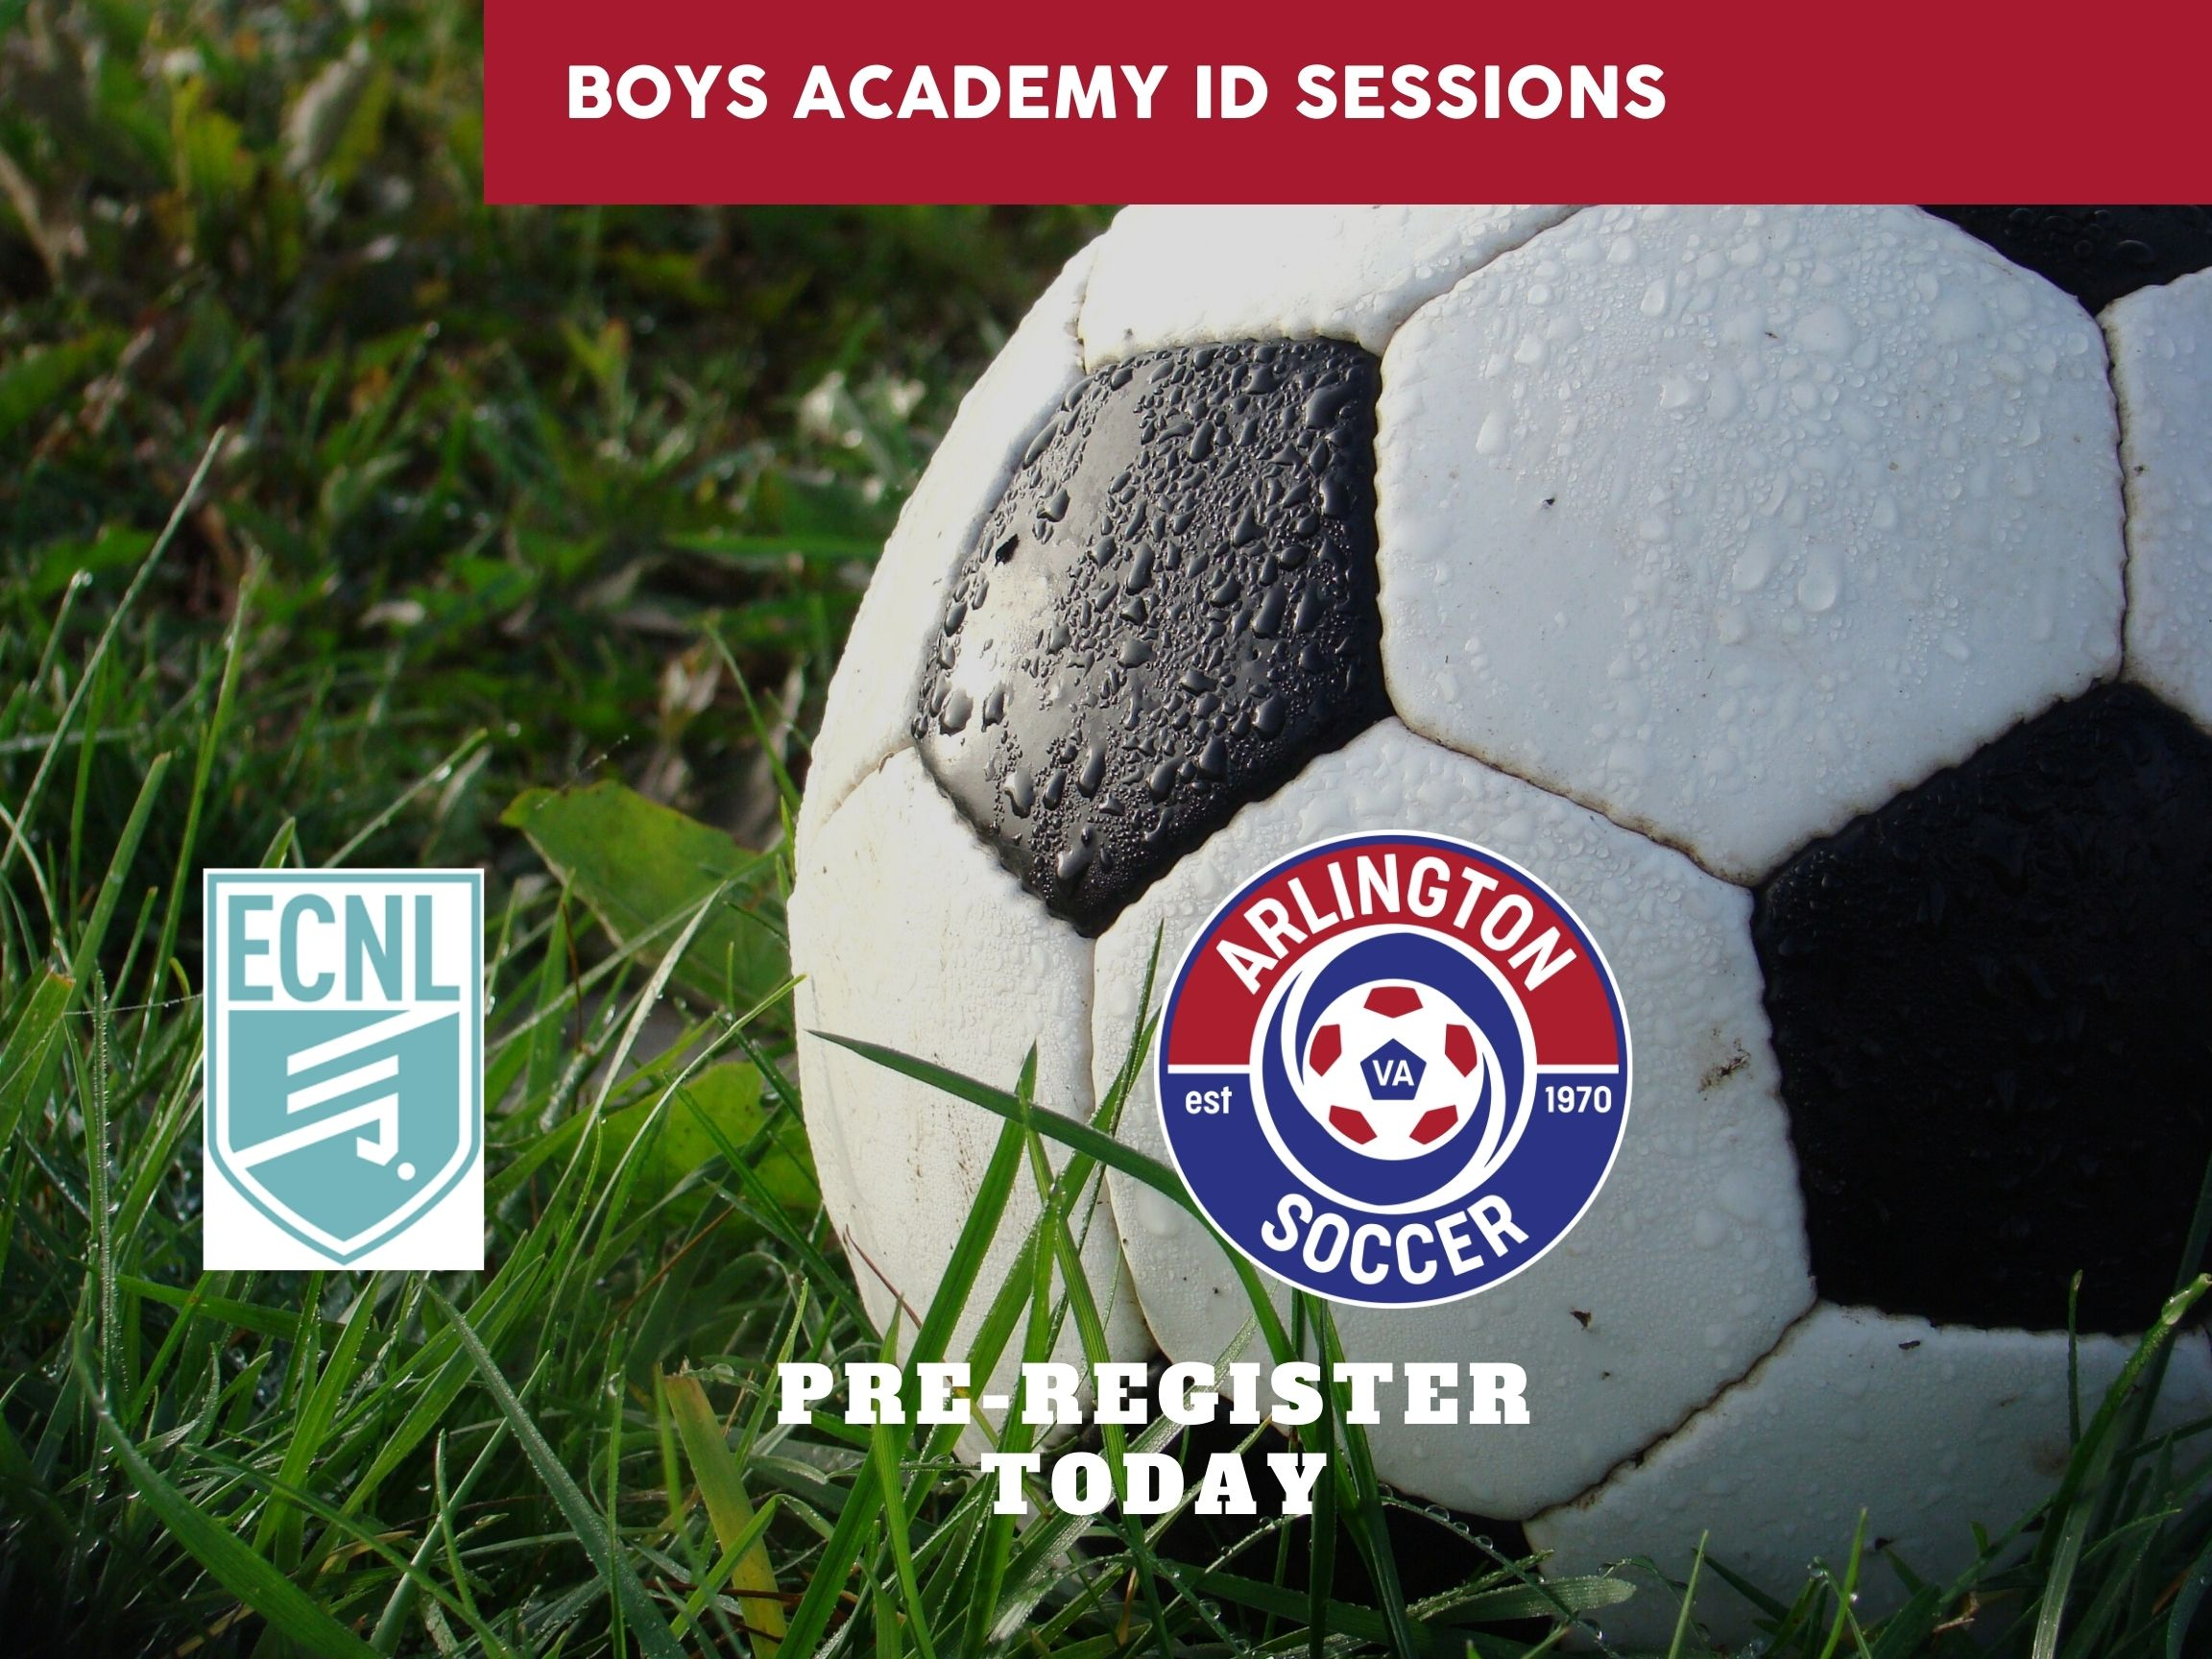 Boys Academy ID Sessions for Elite Players - April 18 and 25, 2021